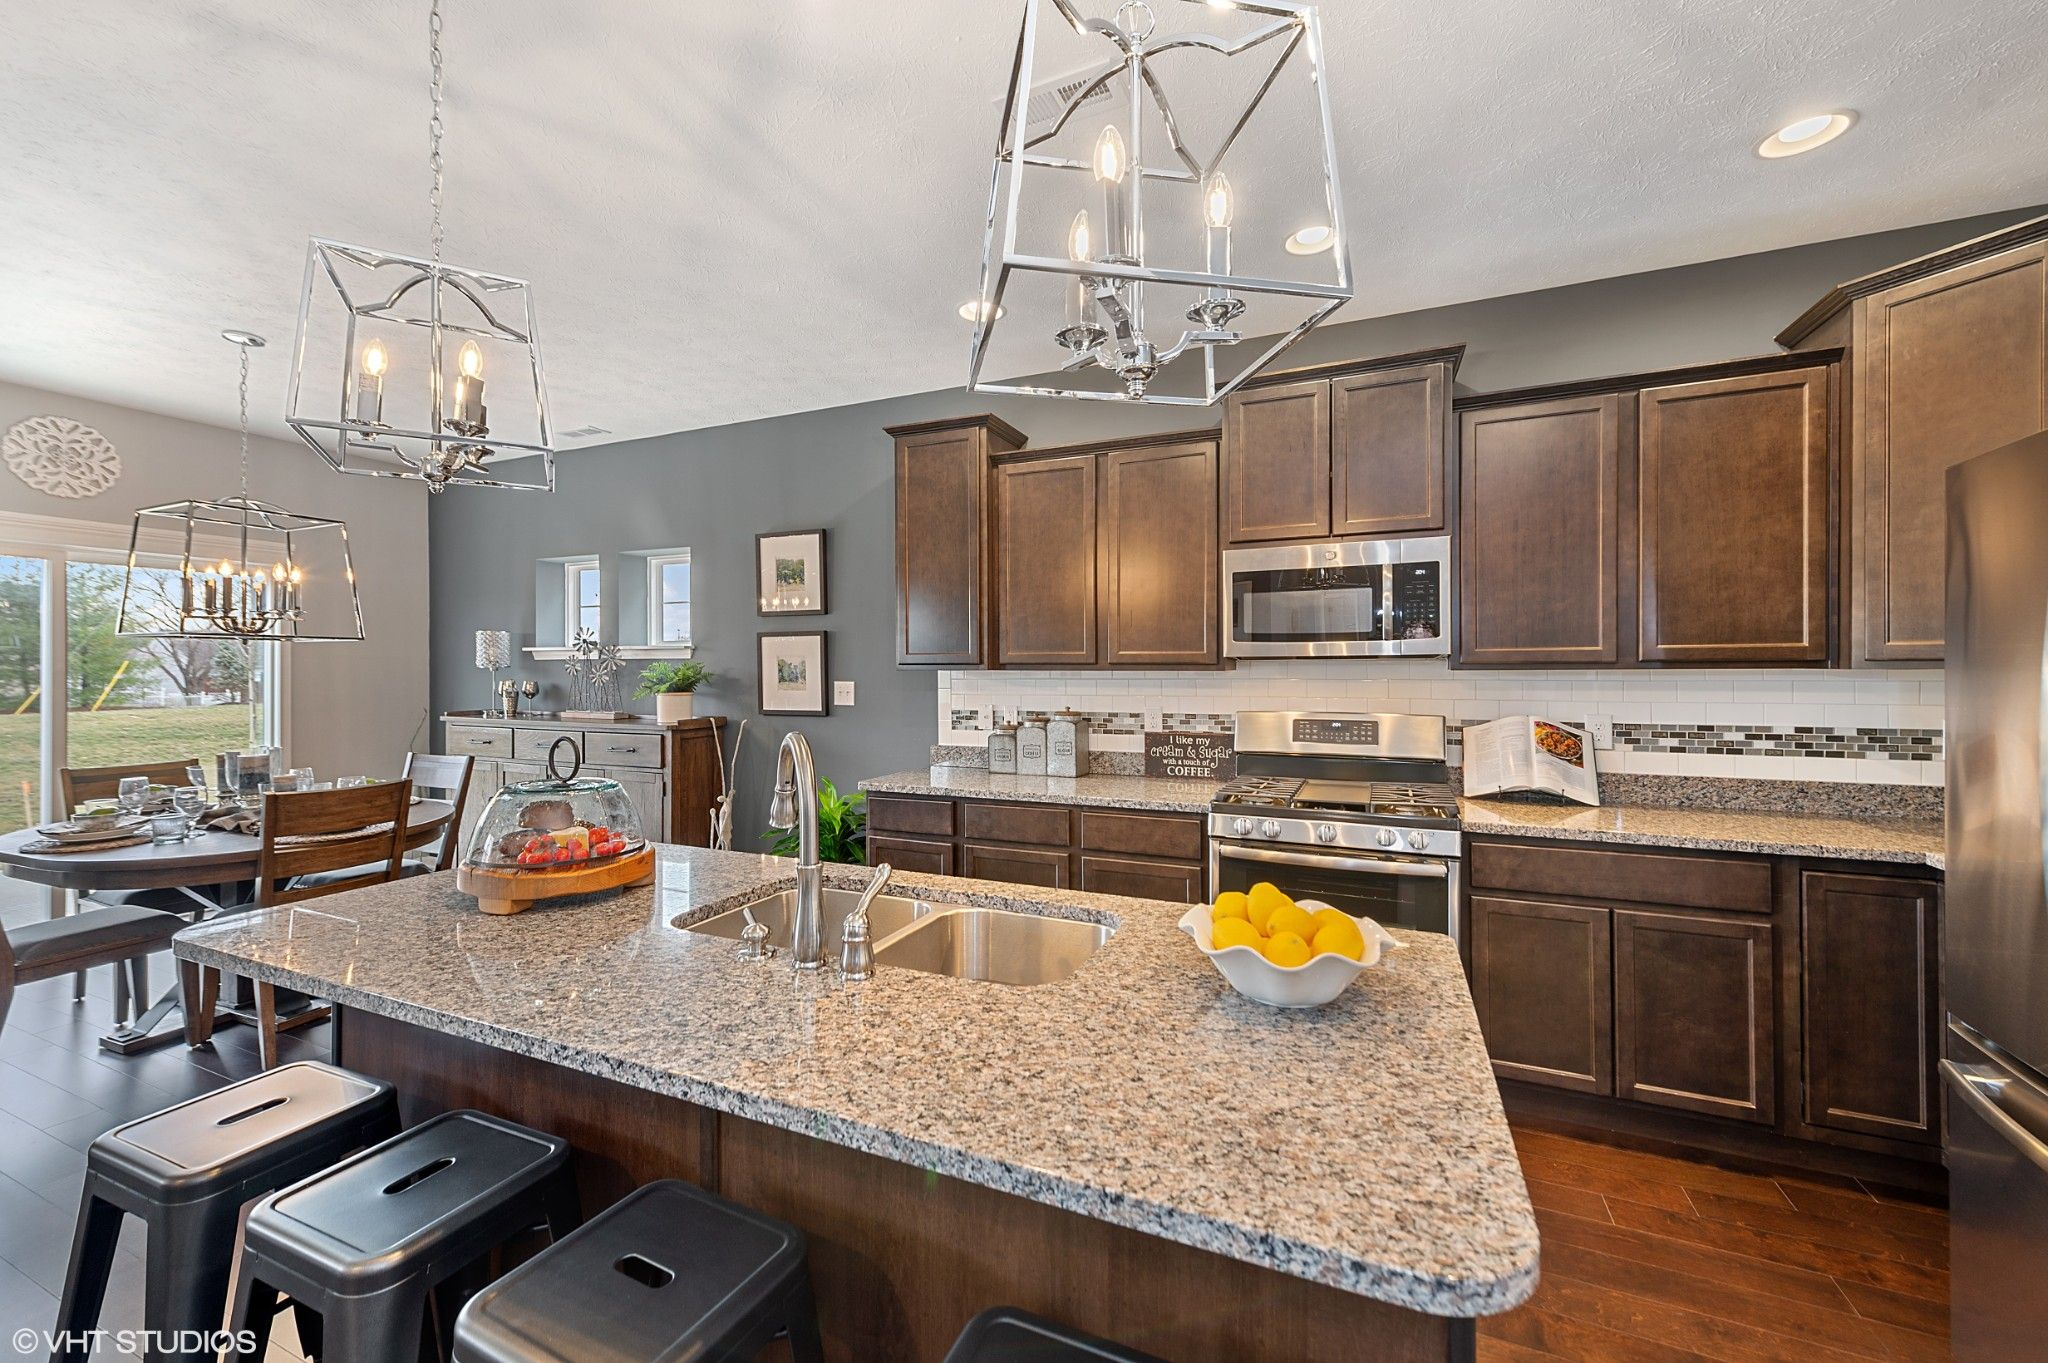 Kitchen featured in the Hudson By Olthof Homes in Indianapolis, IN